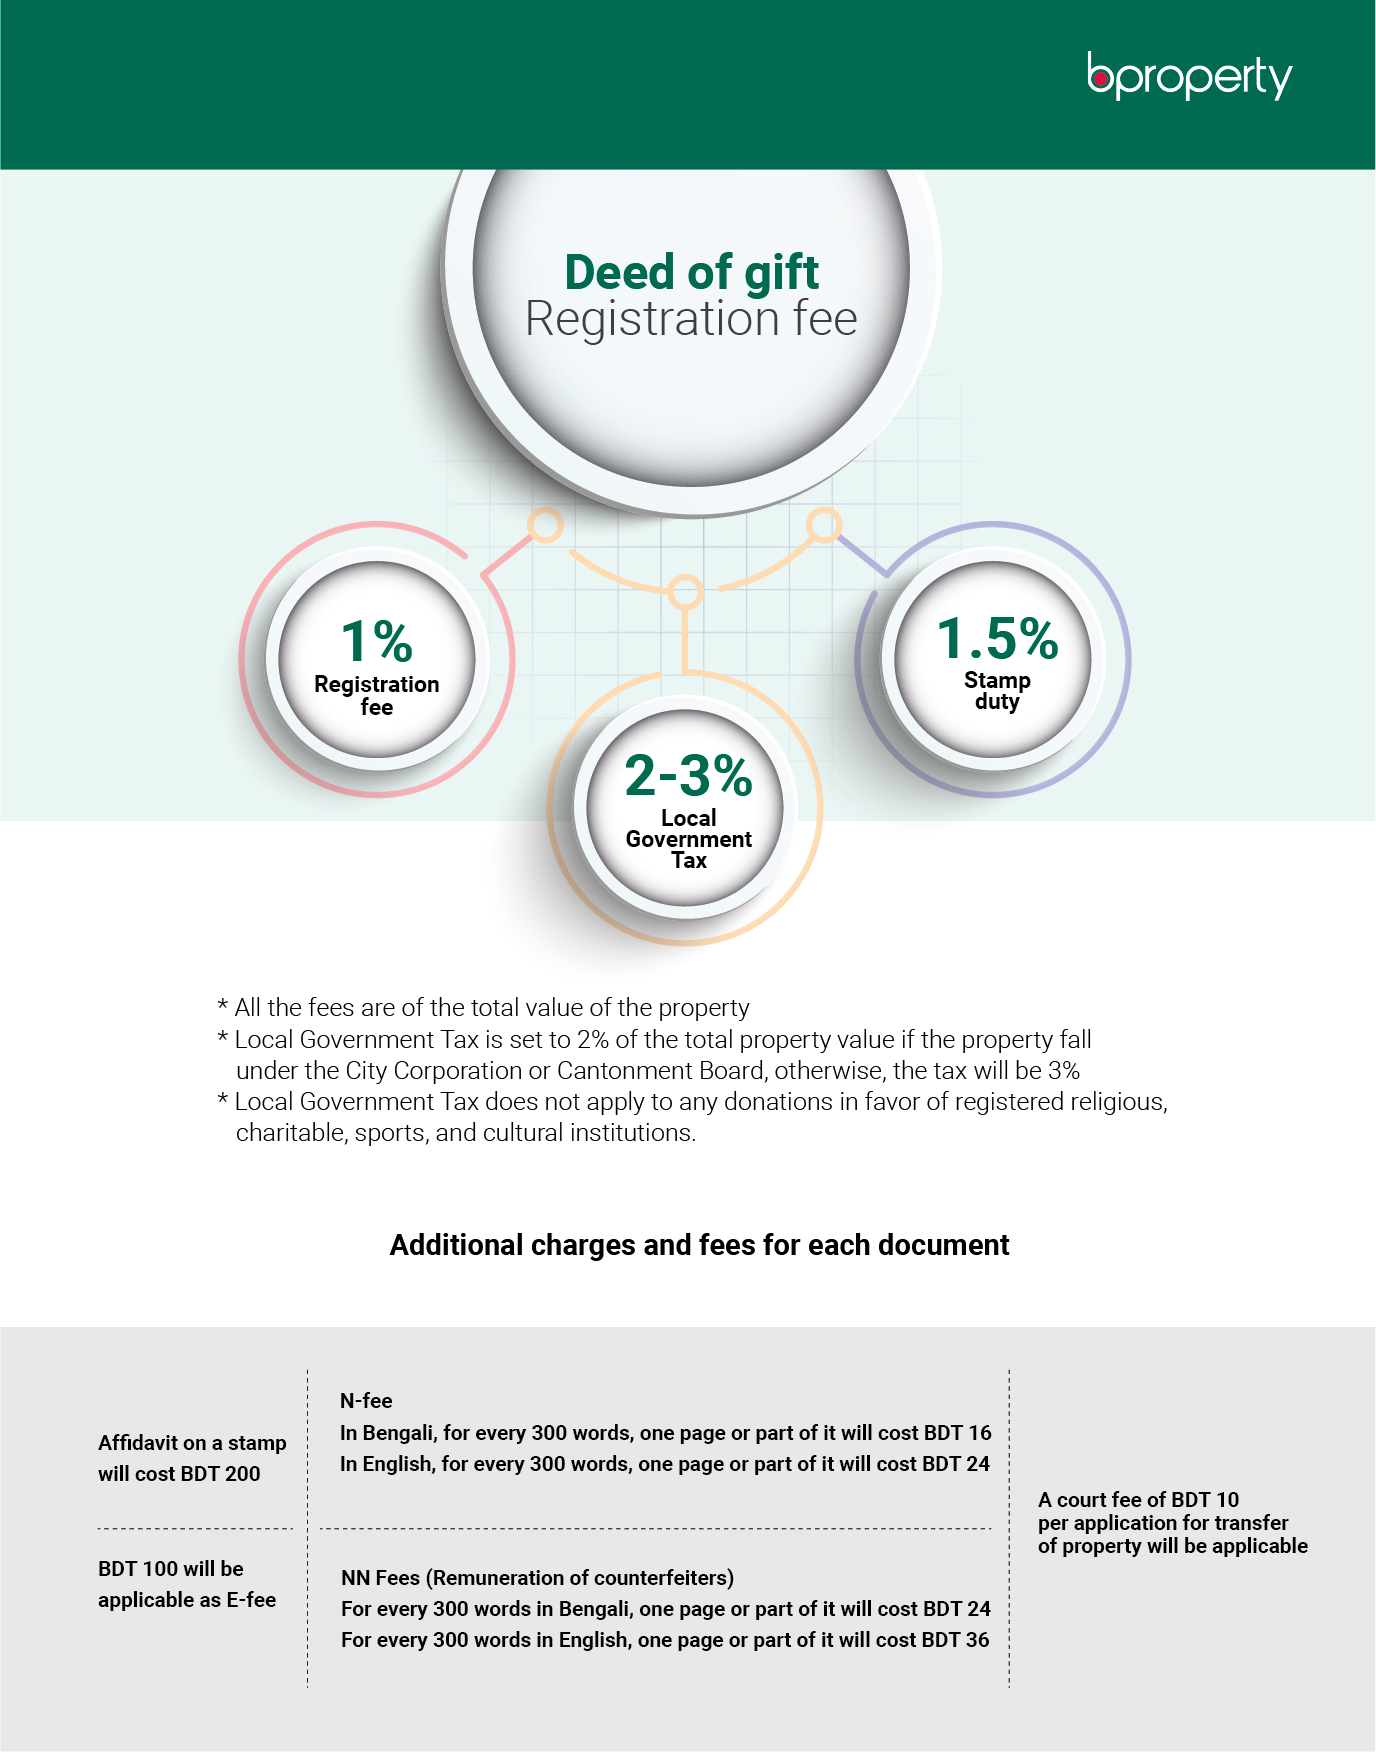 Registration fee of the deed of gift